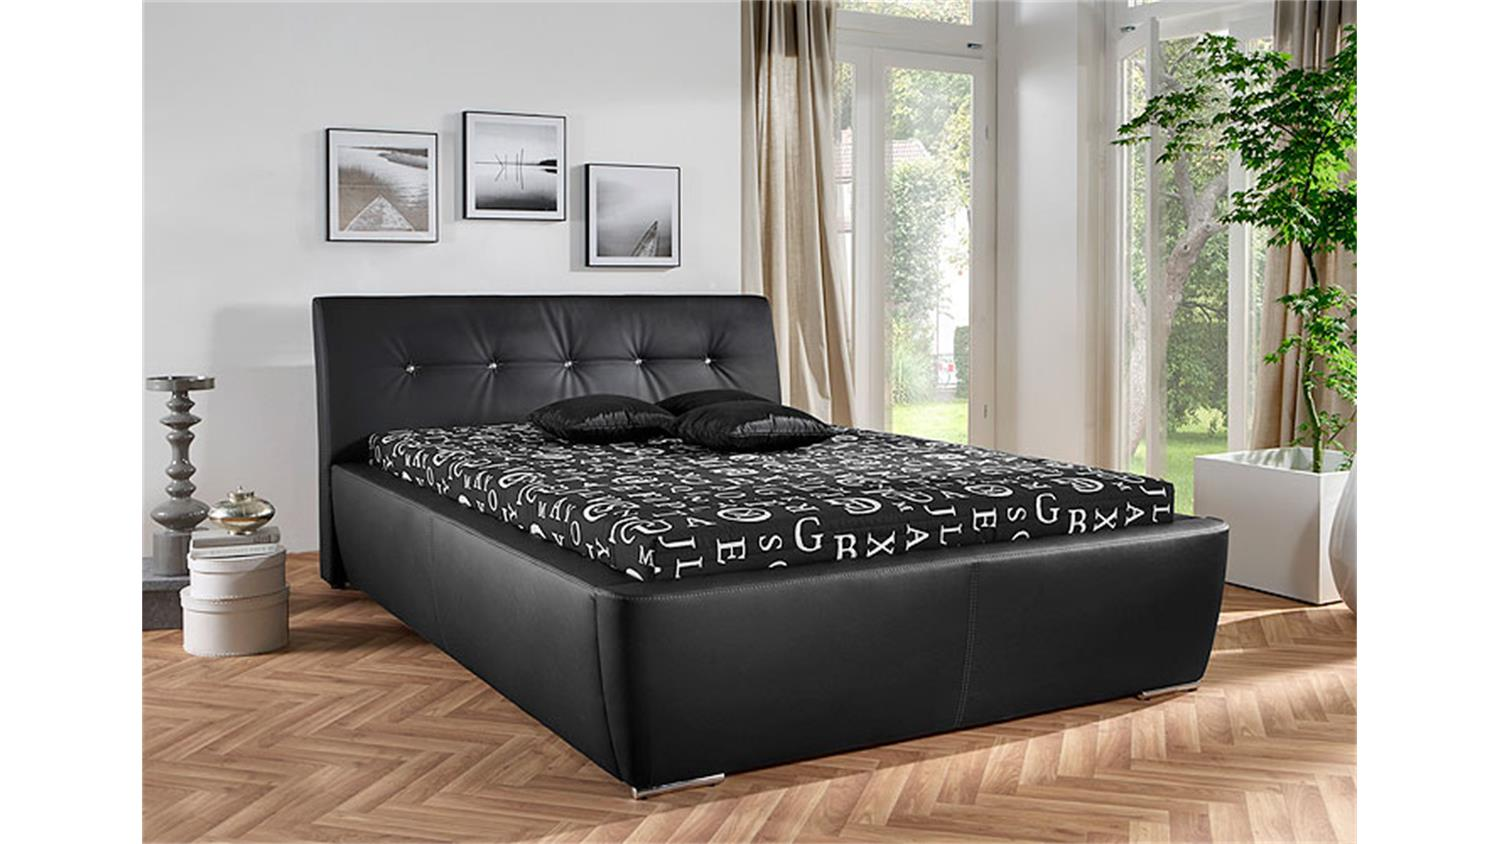 polsterbett cyrano schwarz mit glitzersteinen 180x200 cm. Black Bedroom Furniture Sets. Home Design Ideas